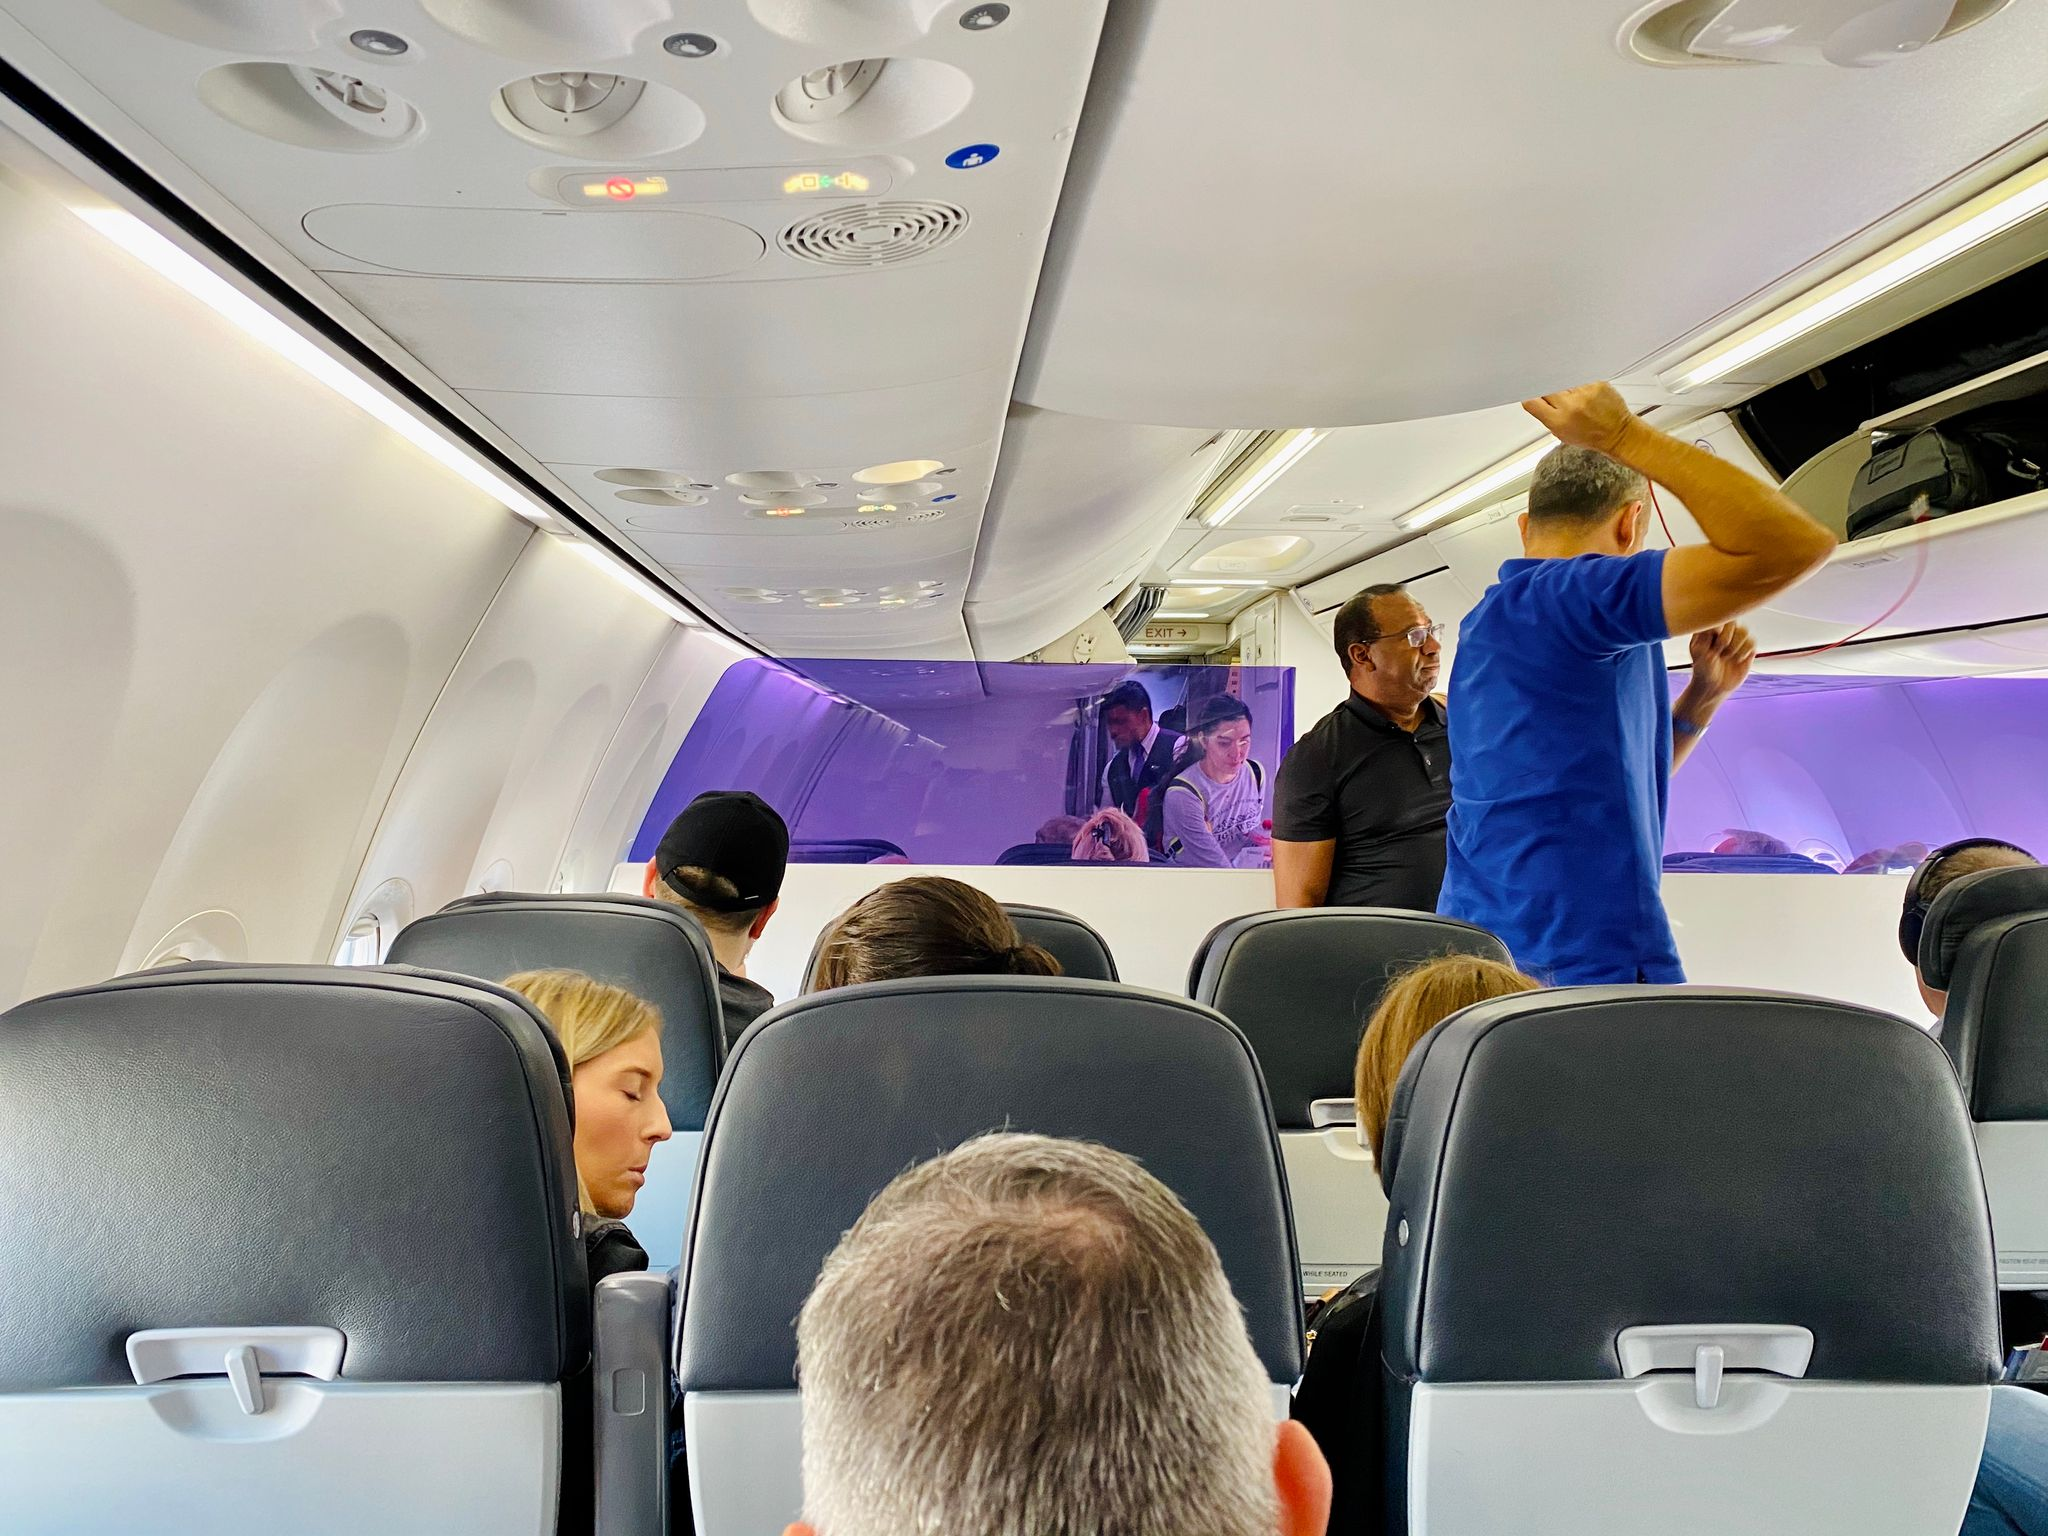 A photo from inside a Boeing 737-800.